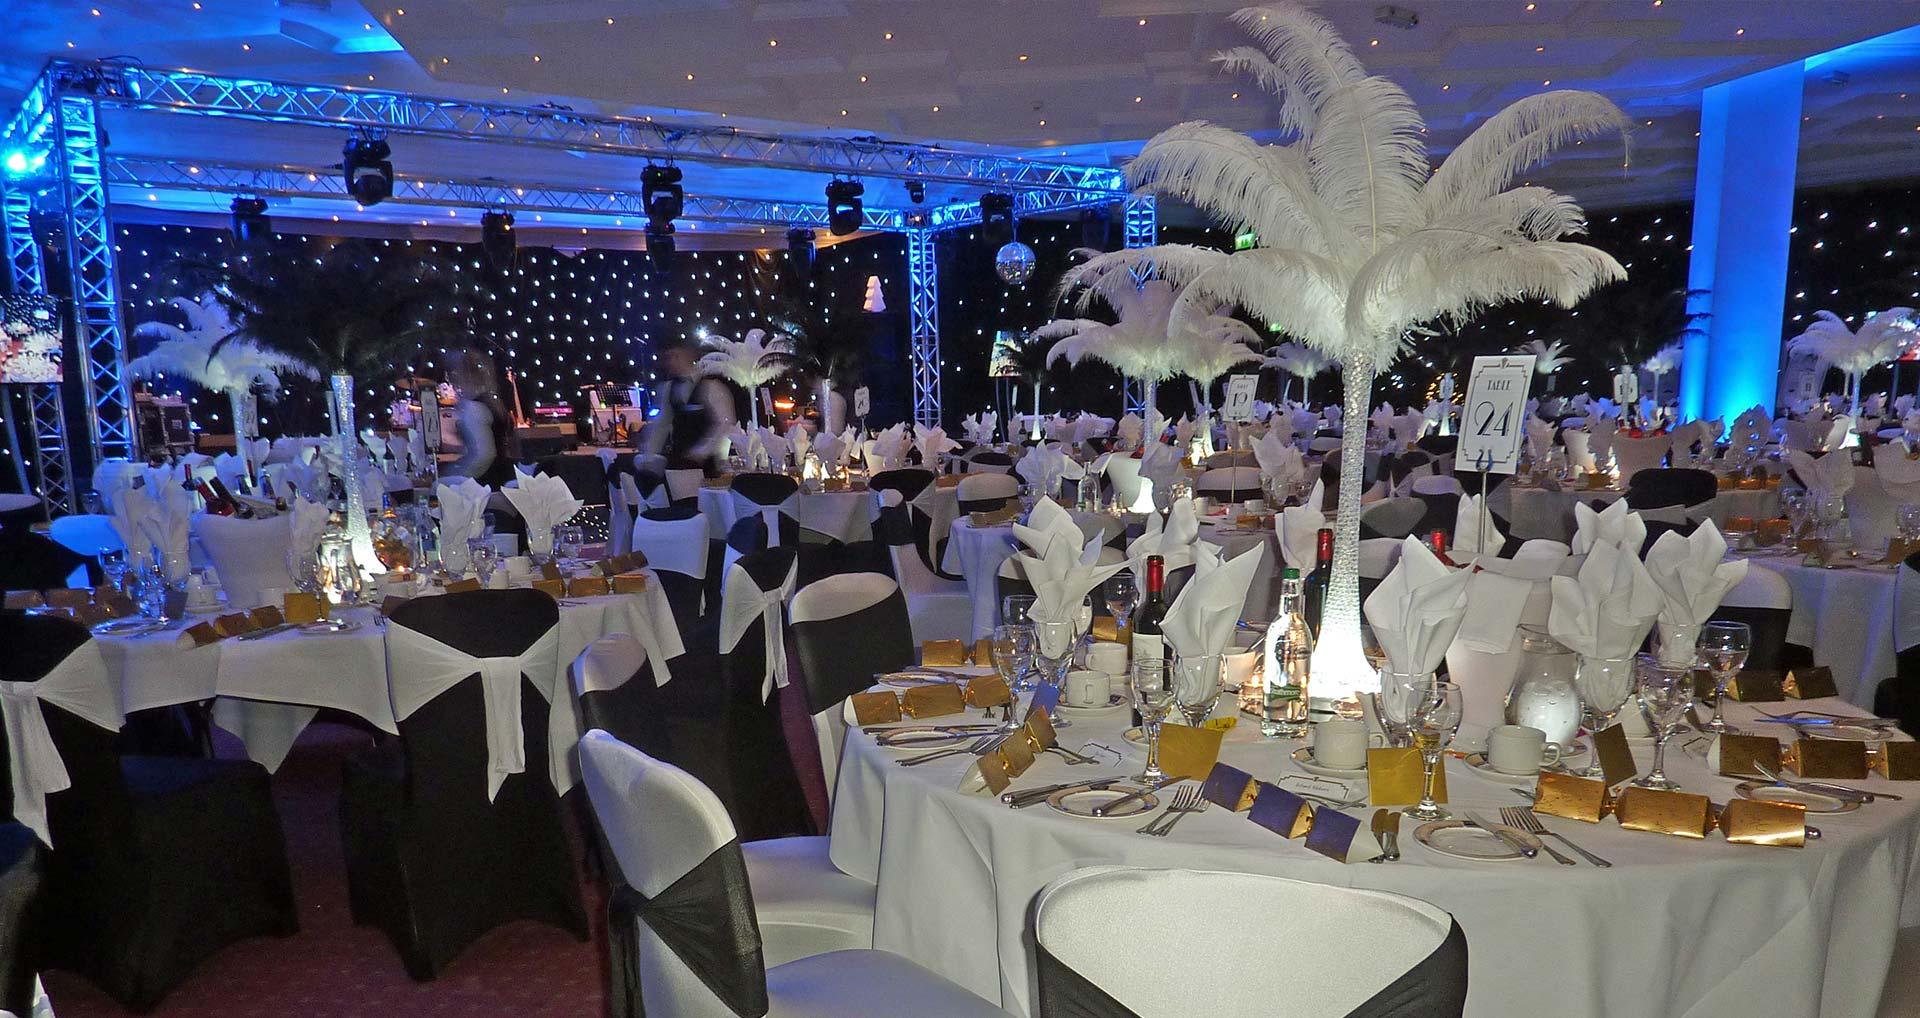 Hire our high quality centrepieces to light up your event